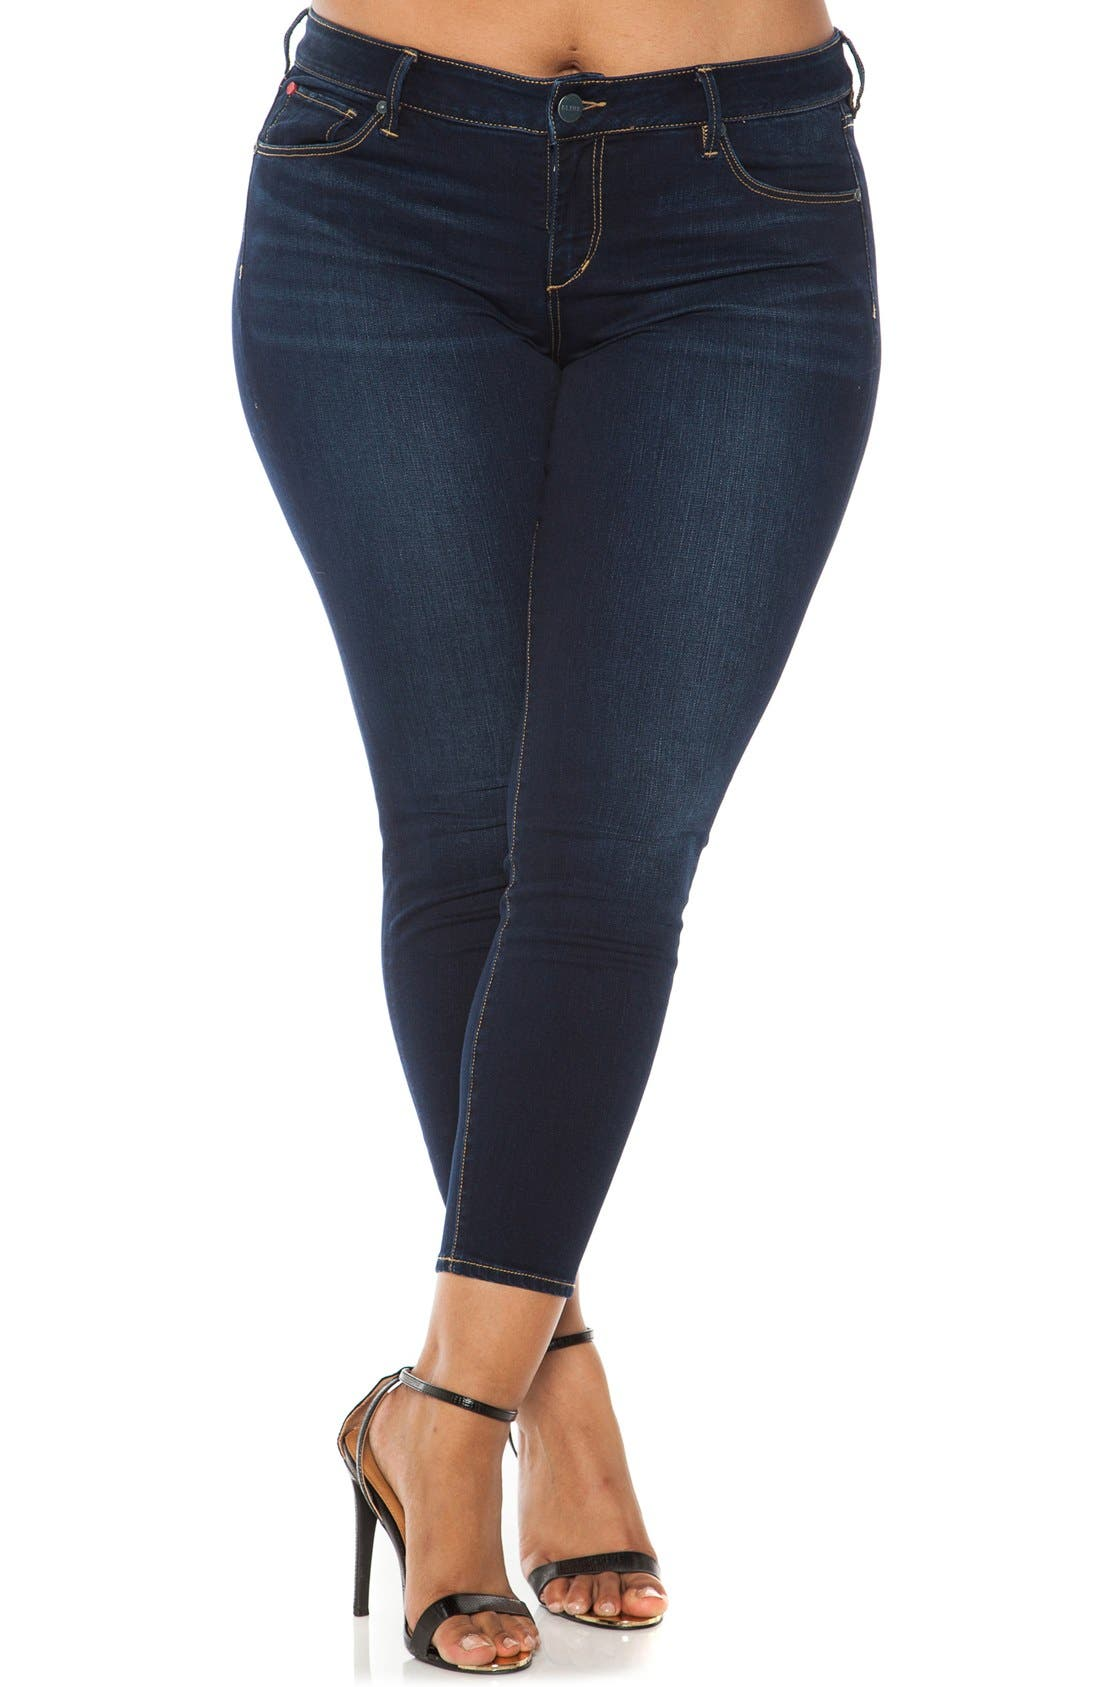 Our plus size denim collection has all the best plus size jeans styles you love - Sizes · Made for a Perfect FitStyles: Bootcut, Skinny, Flare, Shorts, Crops.